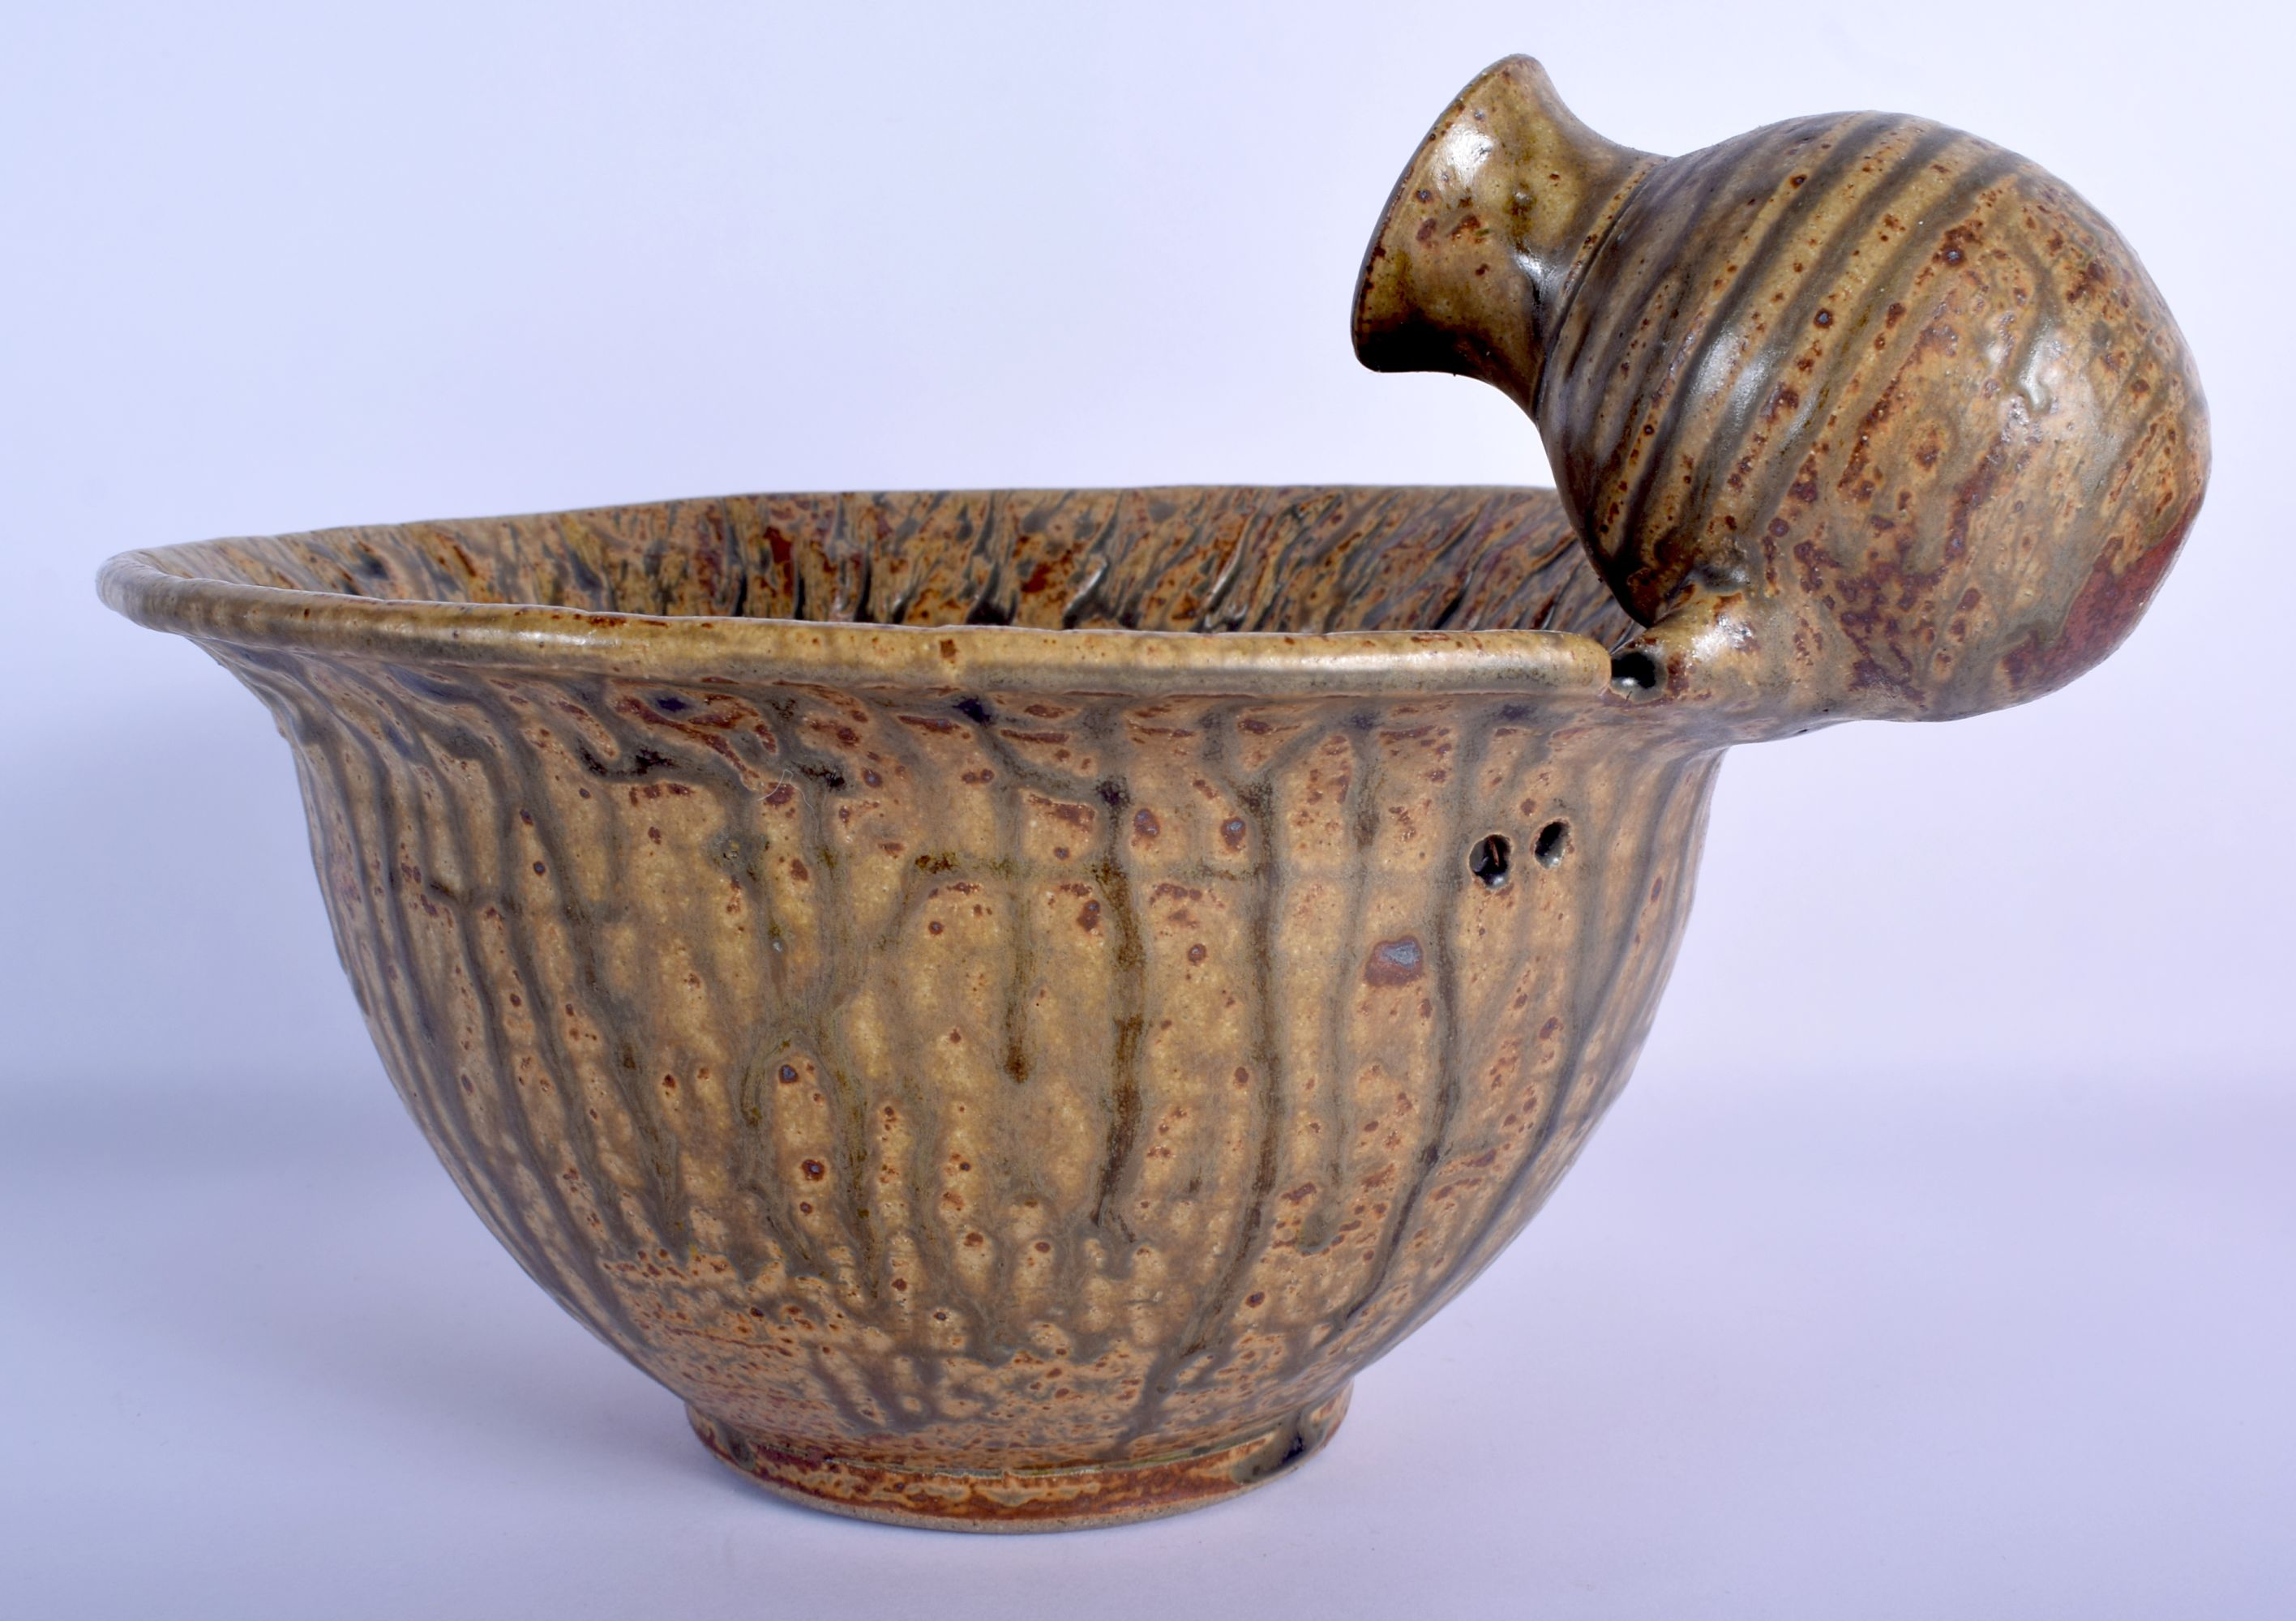 AN UNUSUAL STUDIO POTTERY STONEWARE BOWL unusually modelled with an overlaid amphora. 21 cm x 27 cm. - Image 2 of 5